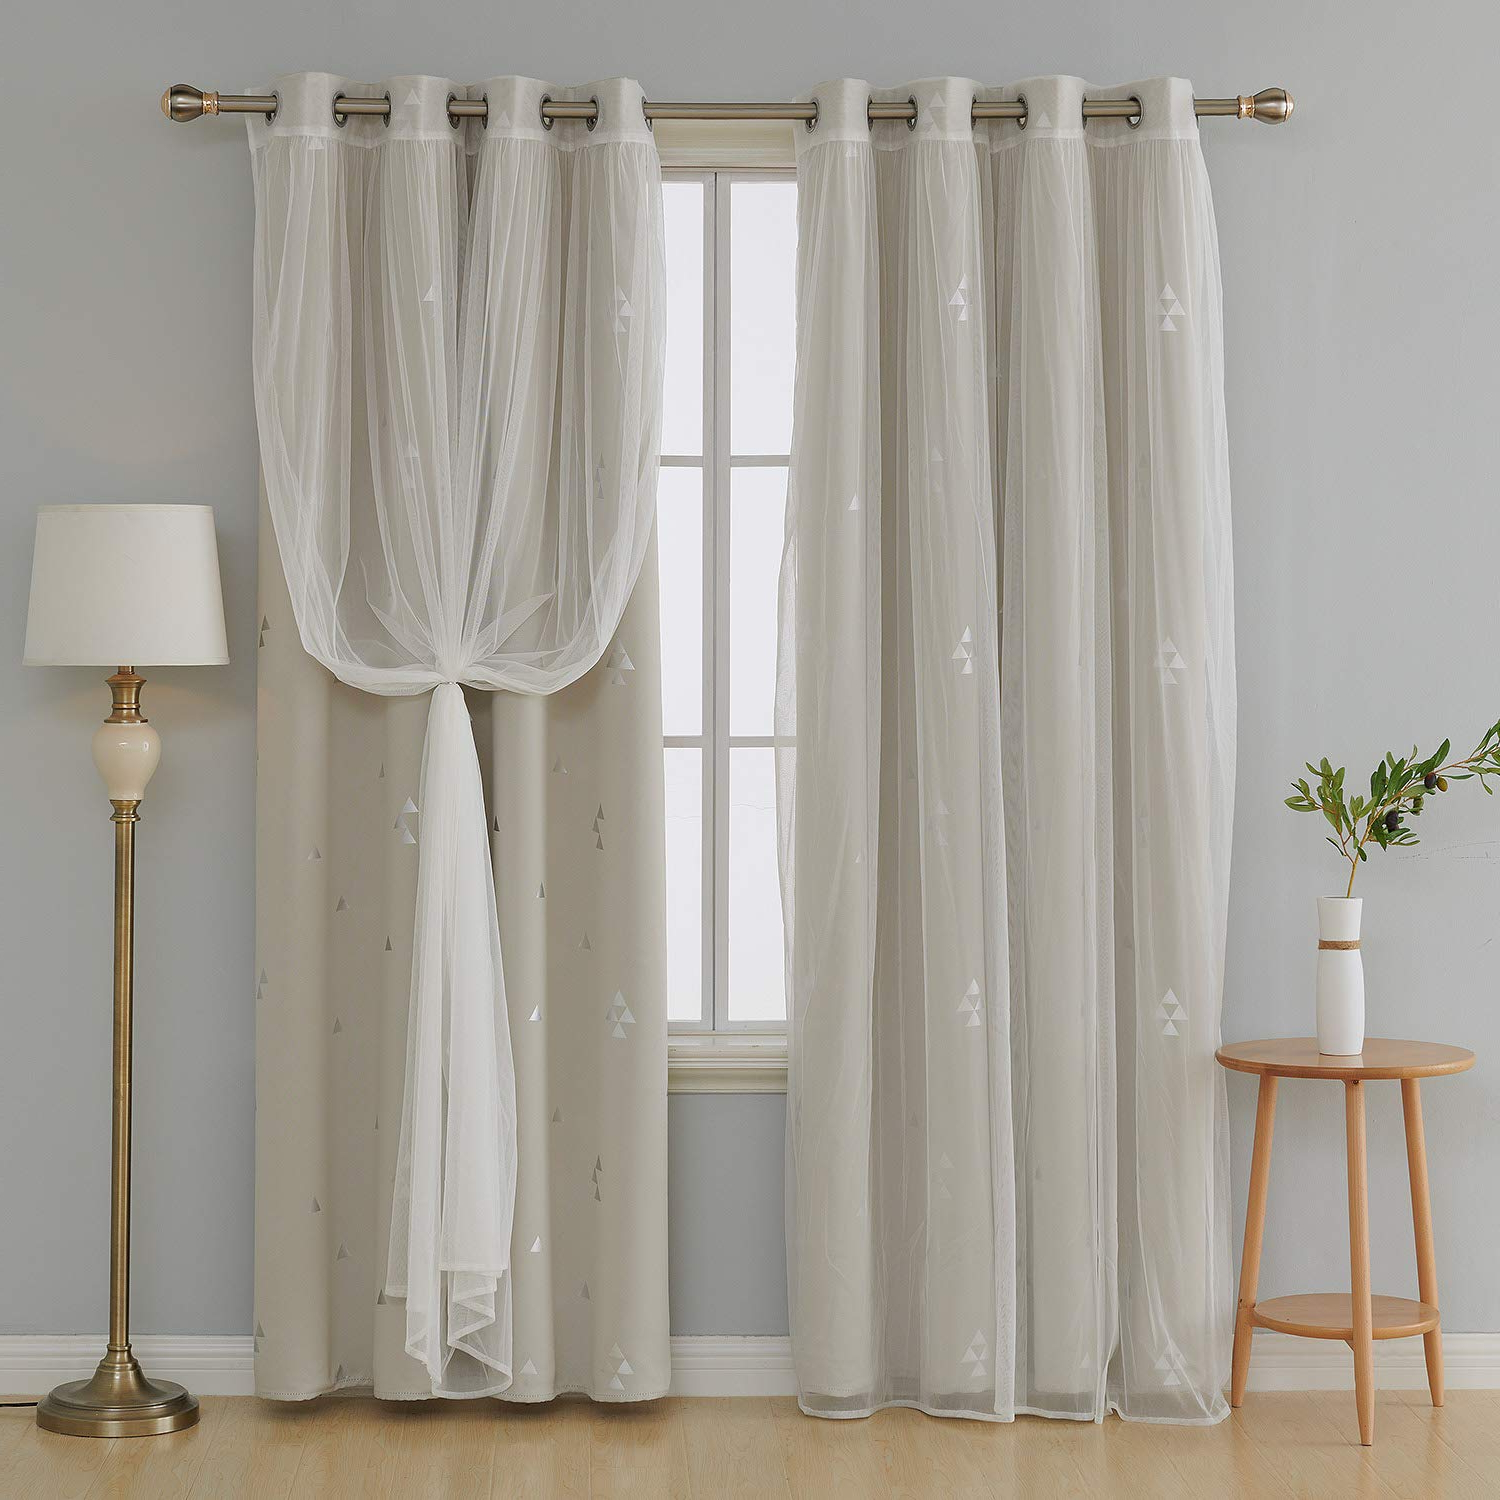 Mix And Match Blackout Tulle Lace Sheer Curtain Panel Sets With Regard To Preferred Deconovo Mix And Match Curtain Triangle Printed Blackout Curtains Panels Cream And Tulle Lace White Sheer Curtains For Nursery With Grommet Top 4 (Gallery 11 of 20)